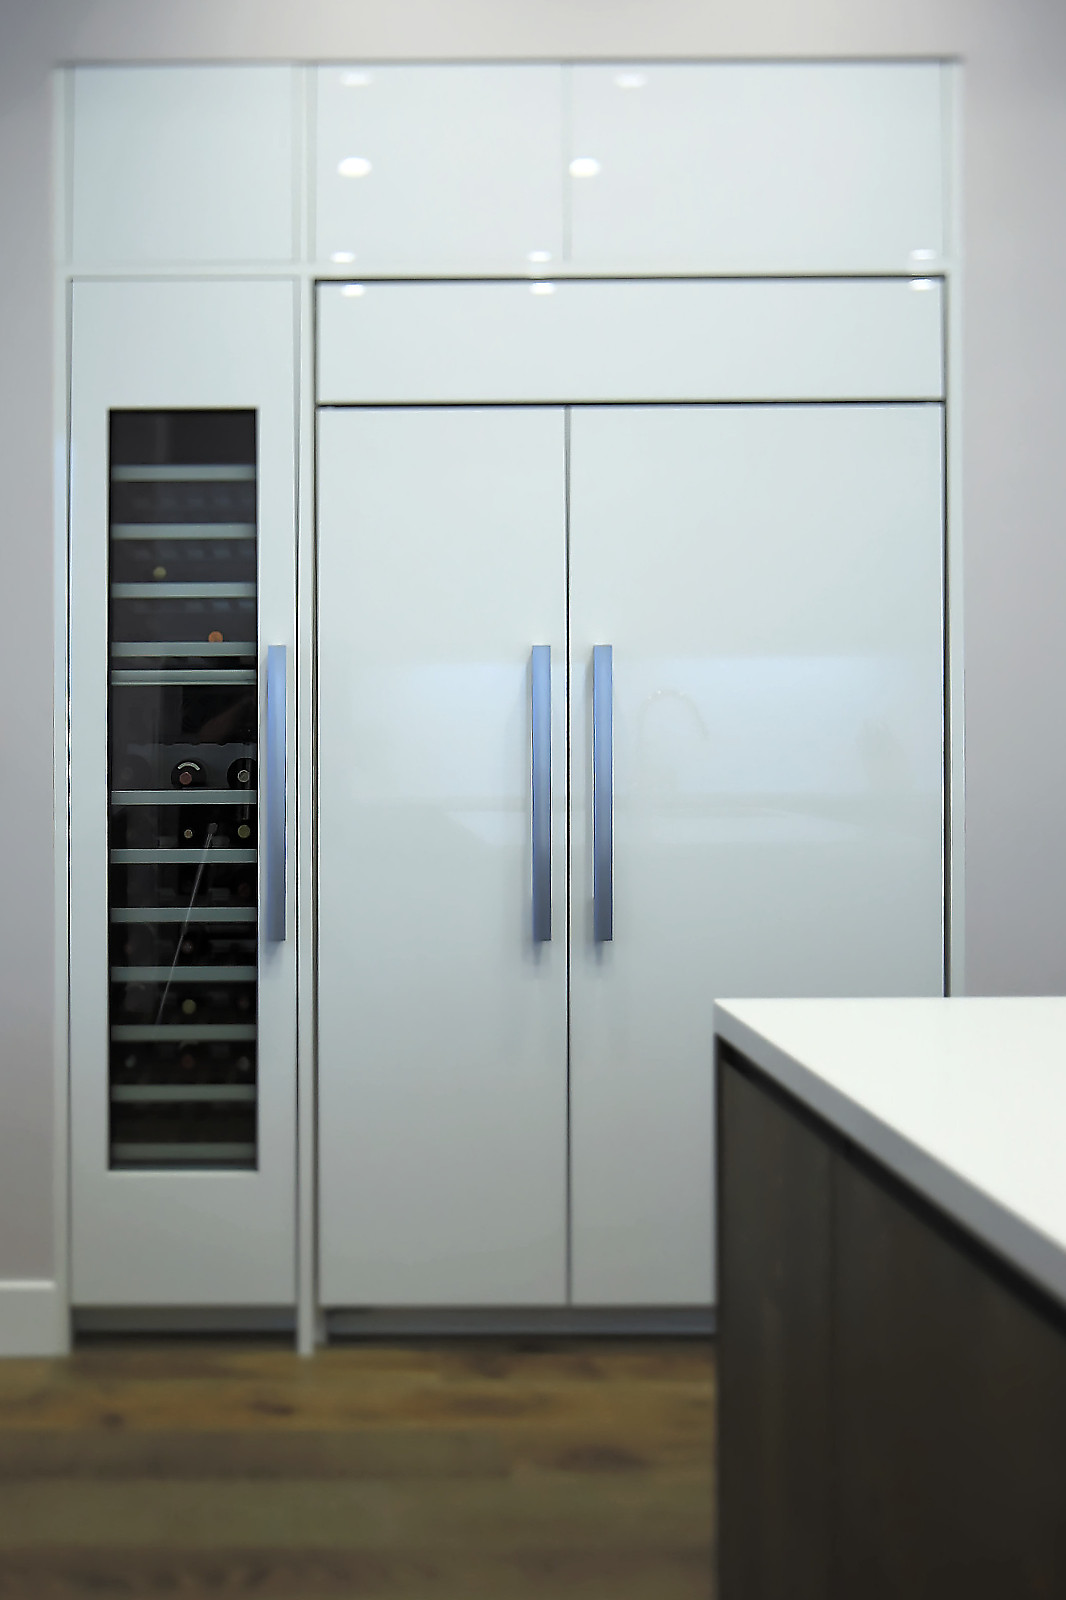 This Sub-Zero fridge installation is a great example of how built-in units can be made flush with other cabinetry. It features a full-height wine fridge with multiple zones.